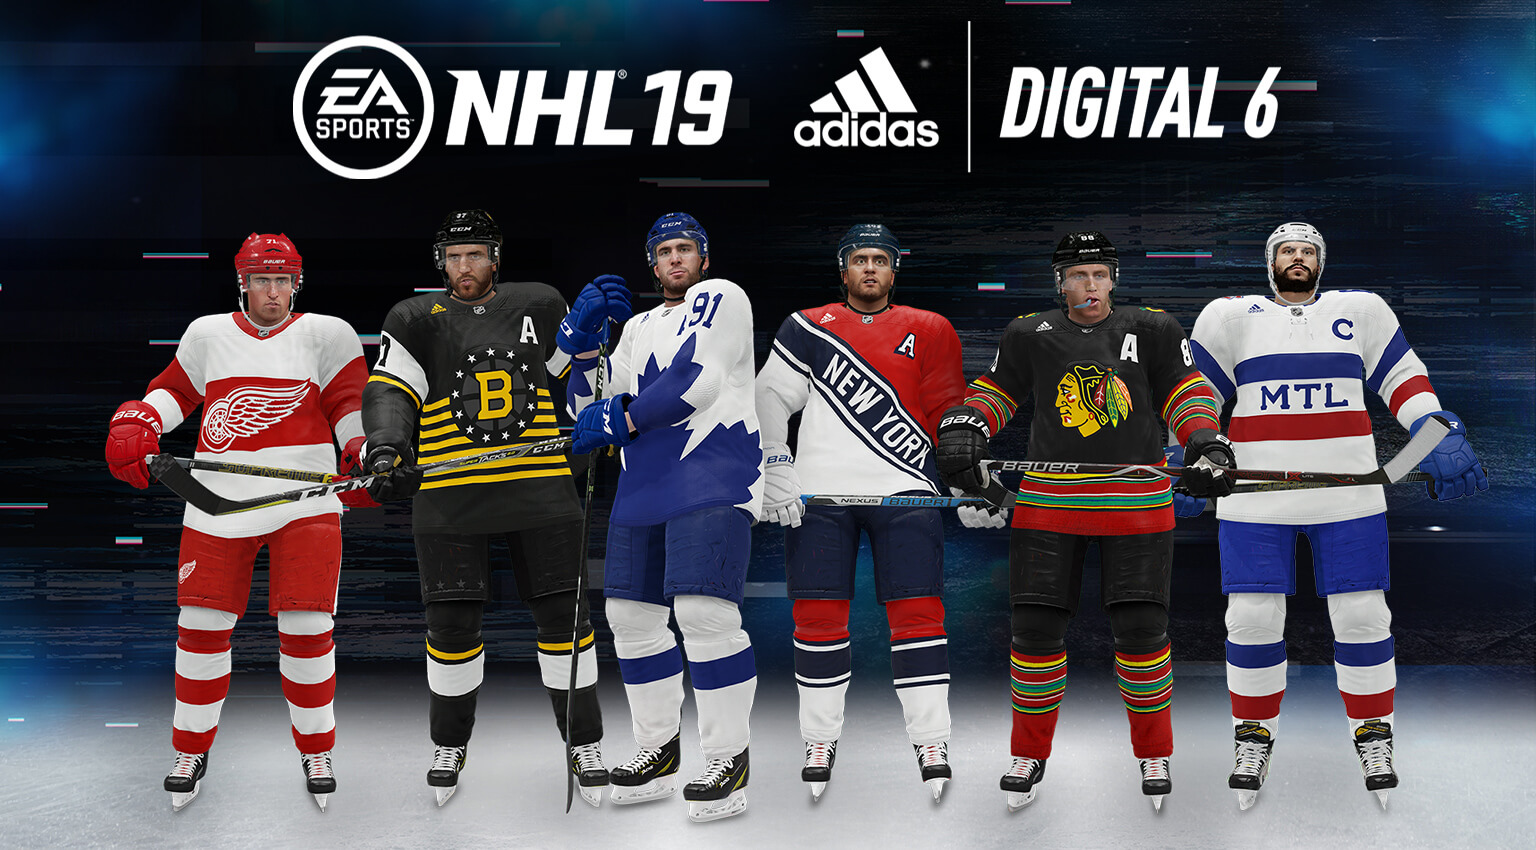 2b67af1b7c4 Adidas has partnered with EA Sports to create a brand new set of NHL jerseys  that will only be available in EA Sports' NHL 19 video game!